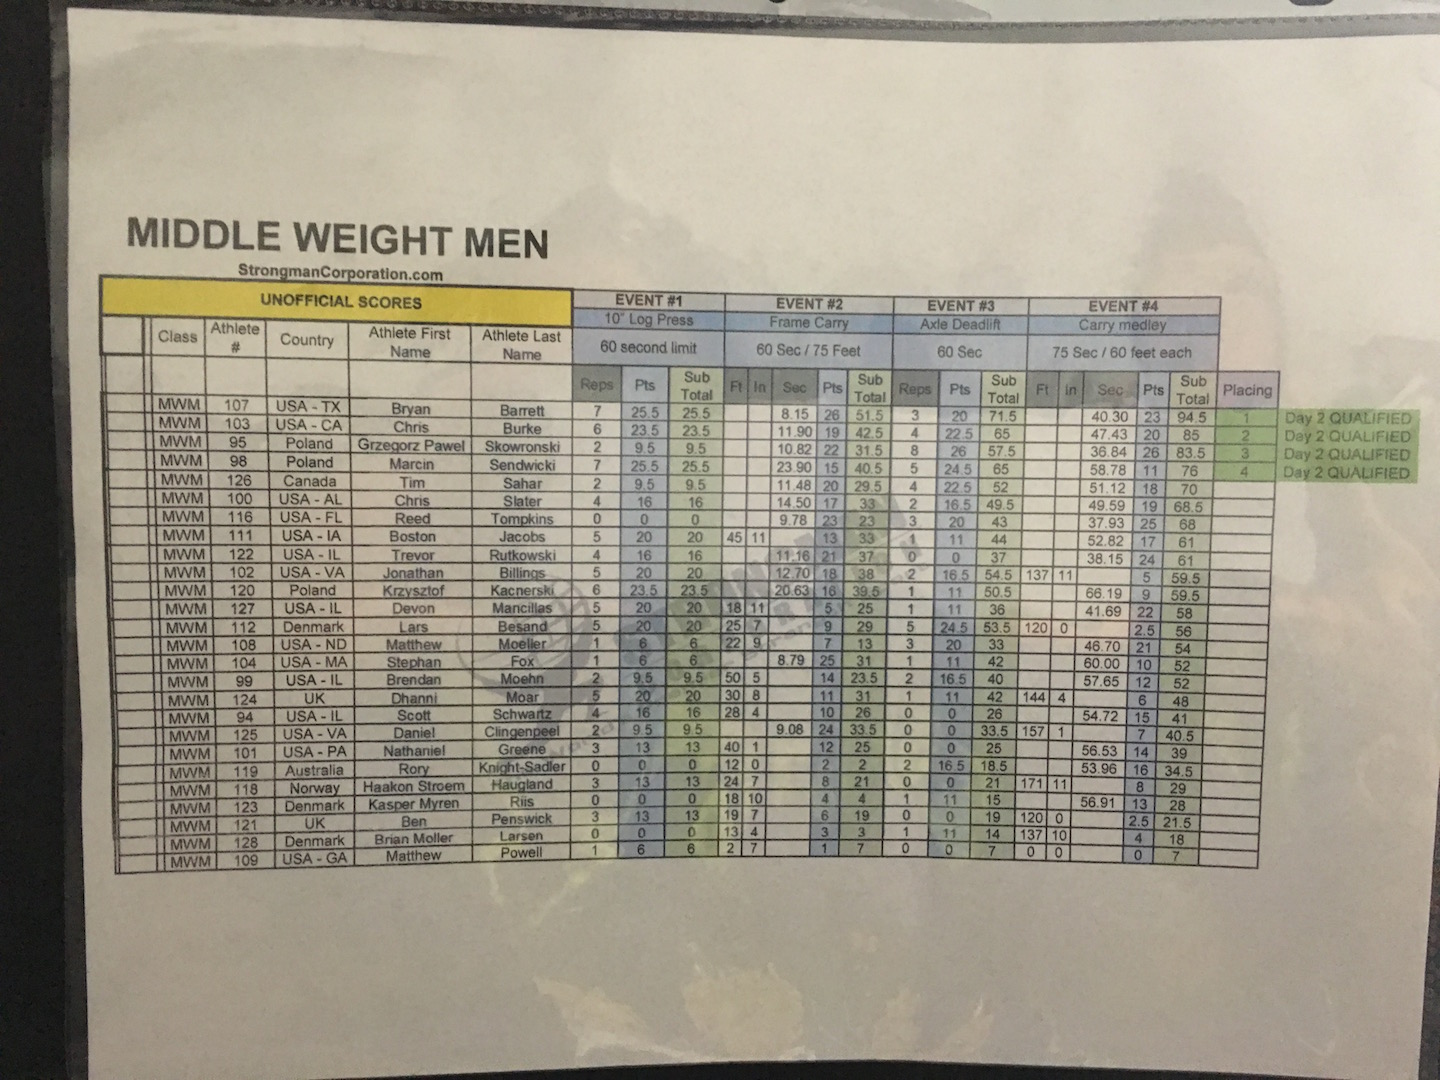 Middleweight Men day 1